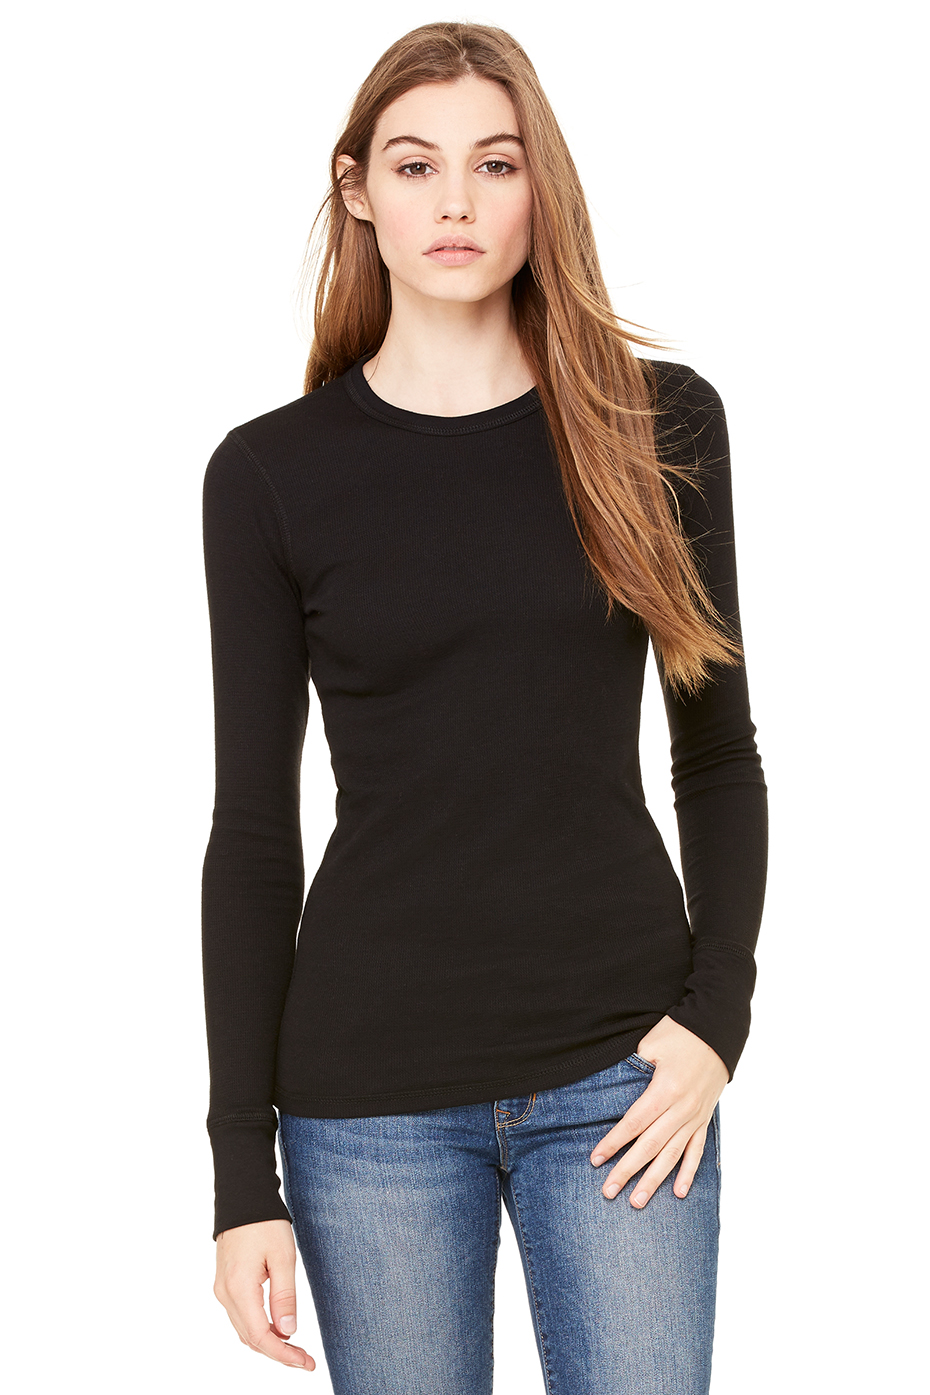 Wholesale clothing women 39 s thermal l s tee for Thermal shirt for women